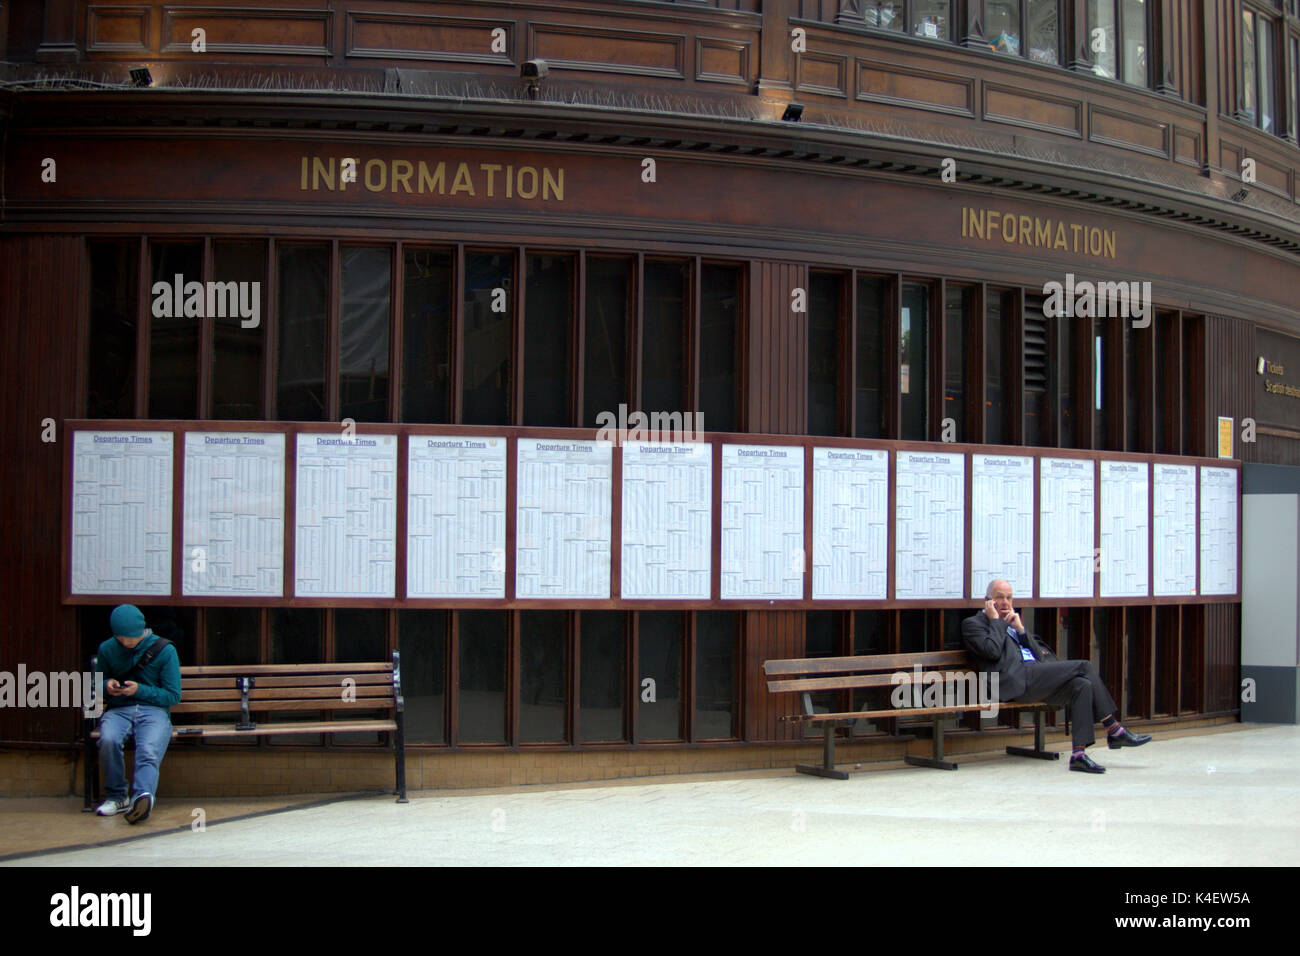 wooden paneled information railway train tables  on side concourse central station Glasgow - Stock Image